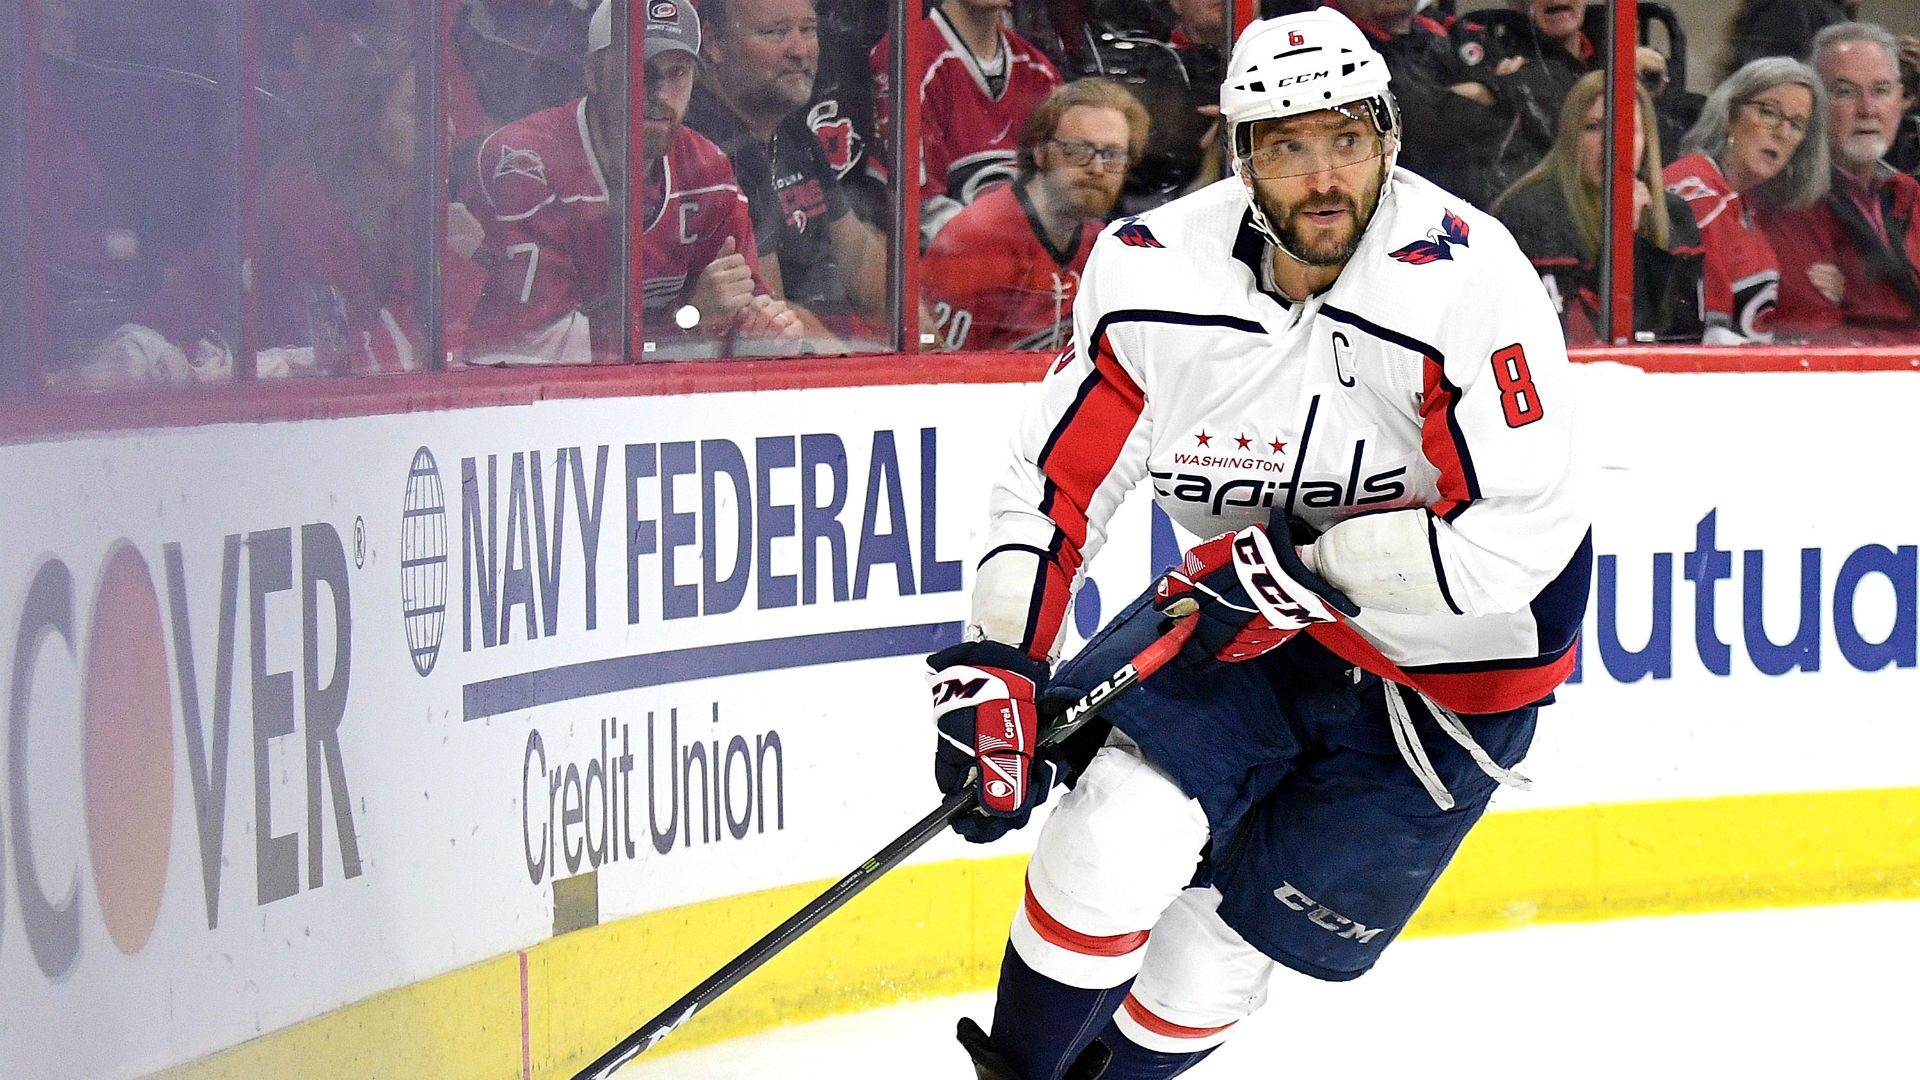 NHL playoffs 2019: Controversial goalie interference call on Alex Ovechkin paves way to Game 7